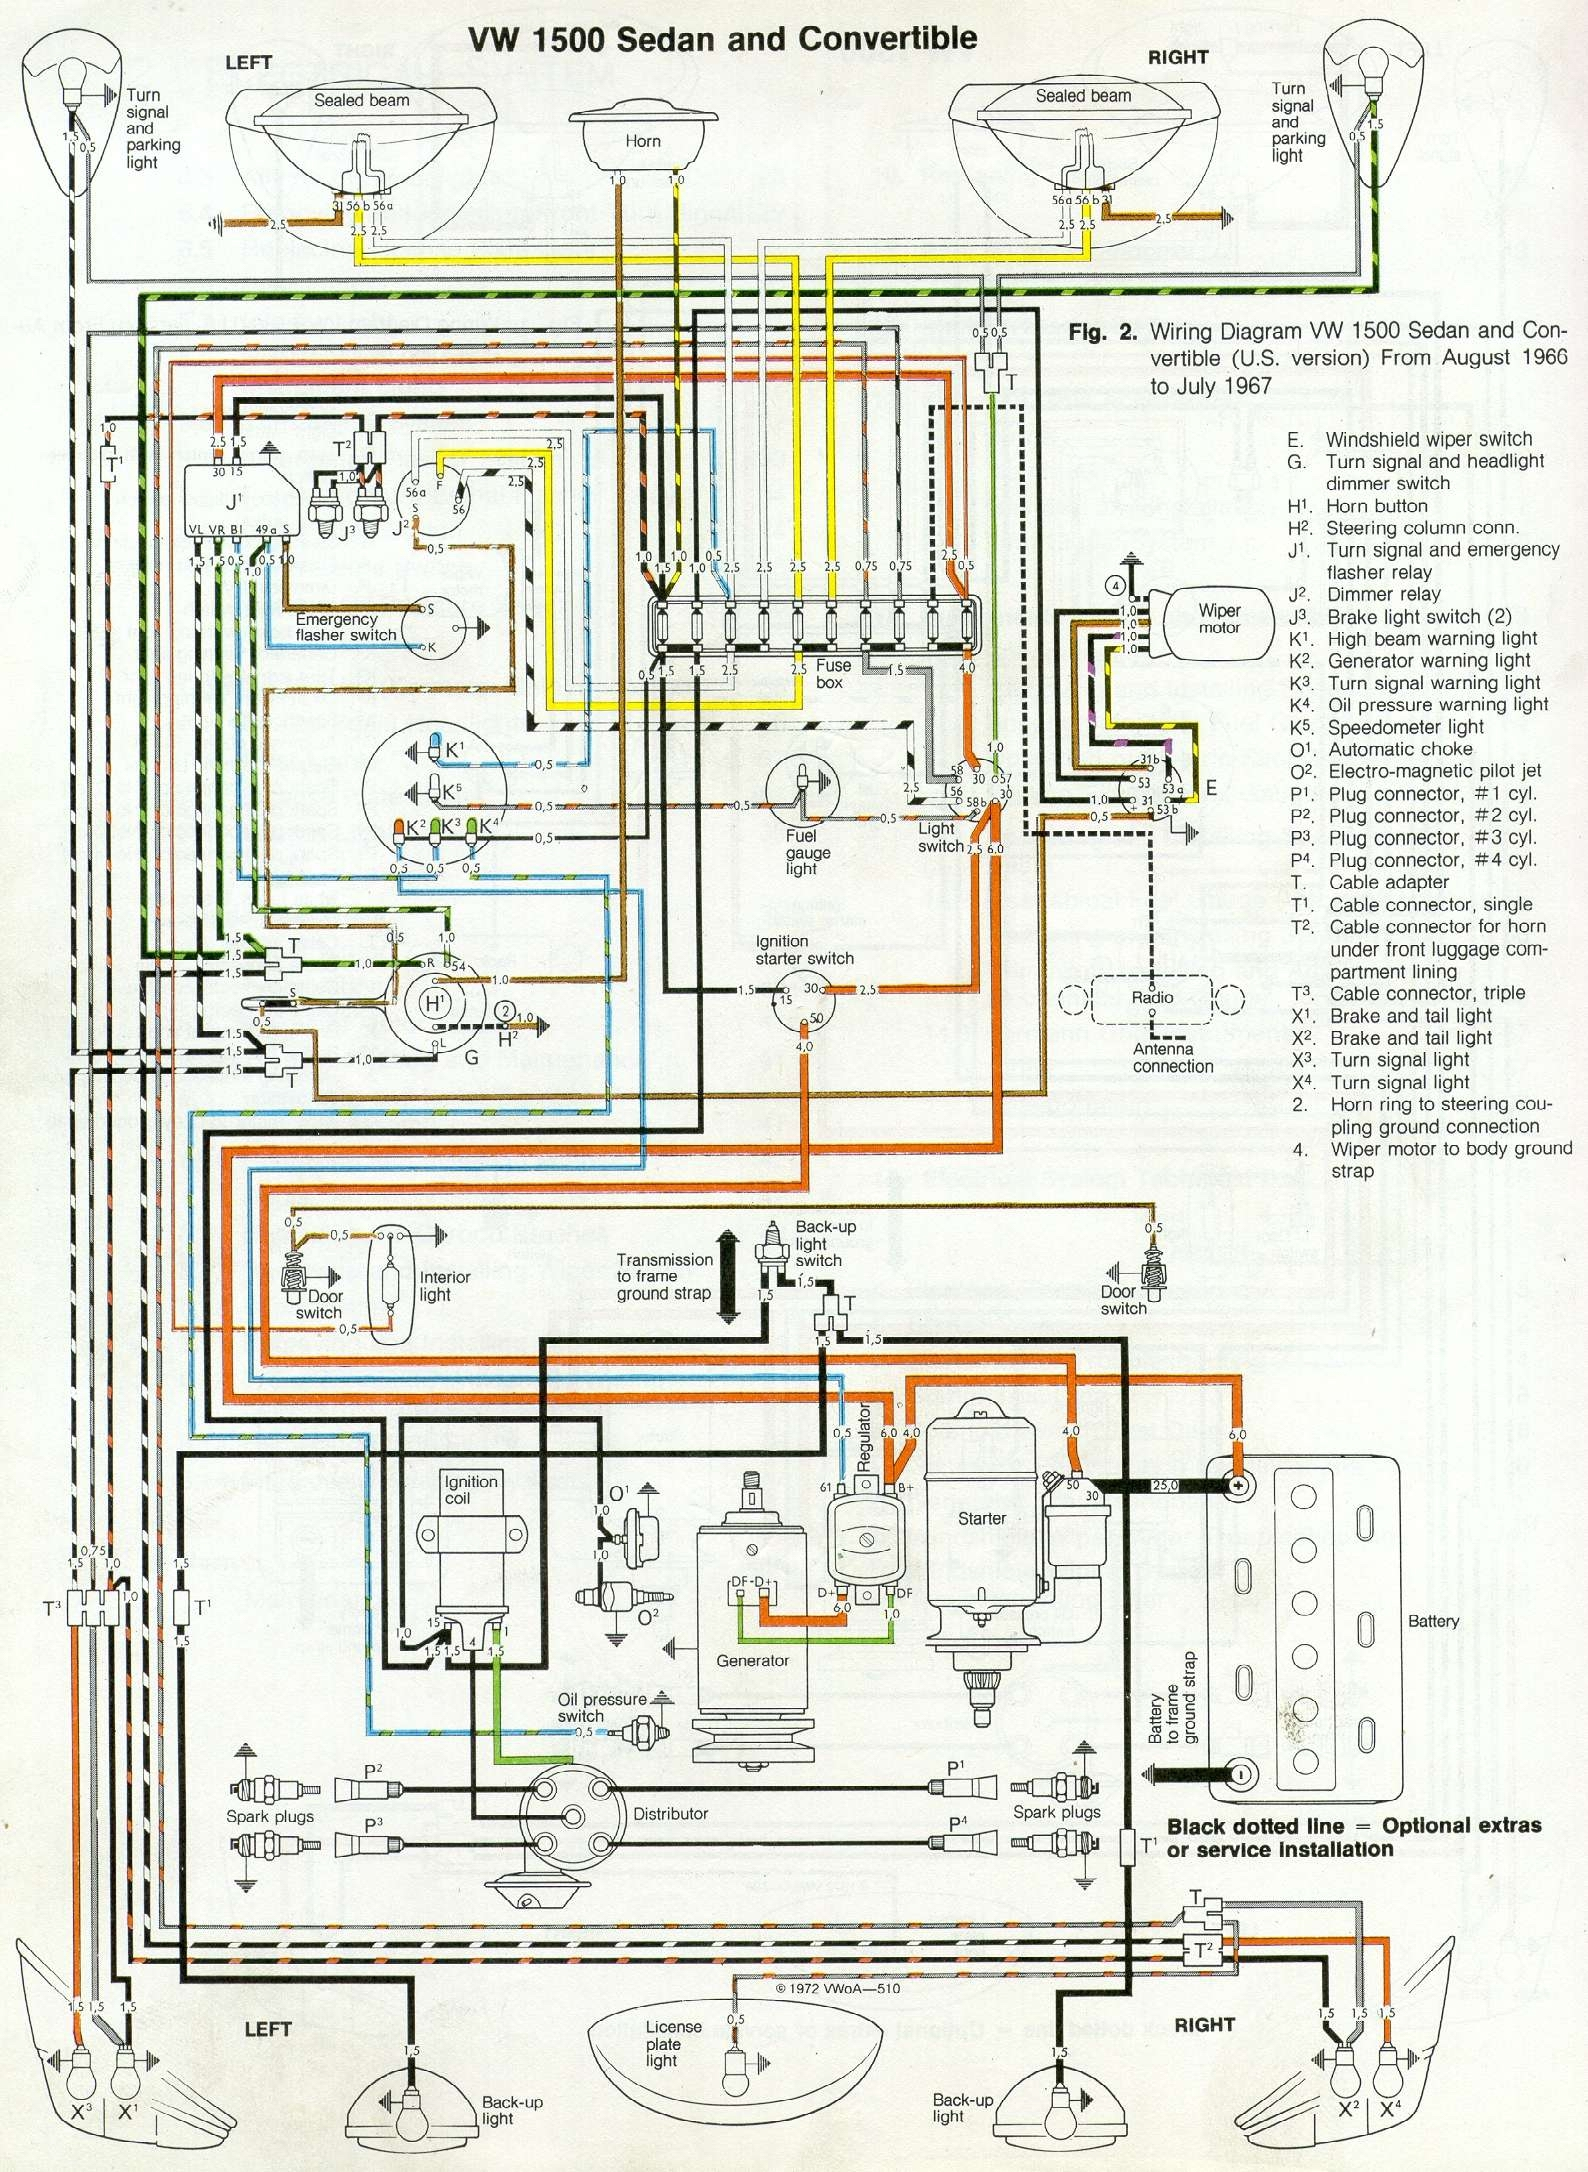 Headlight Wiring For 1965 Vw Bug | blame-edition wiring diagram data -  blame-edition.adi-mer.itadi-mer.it